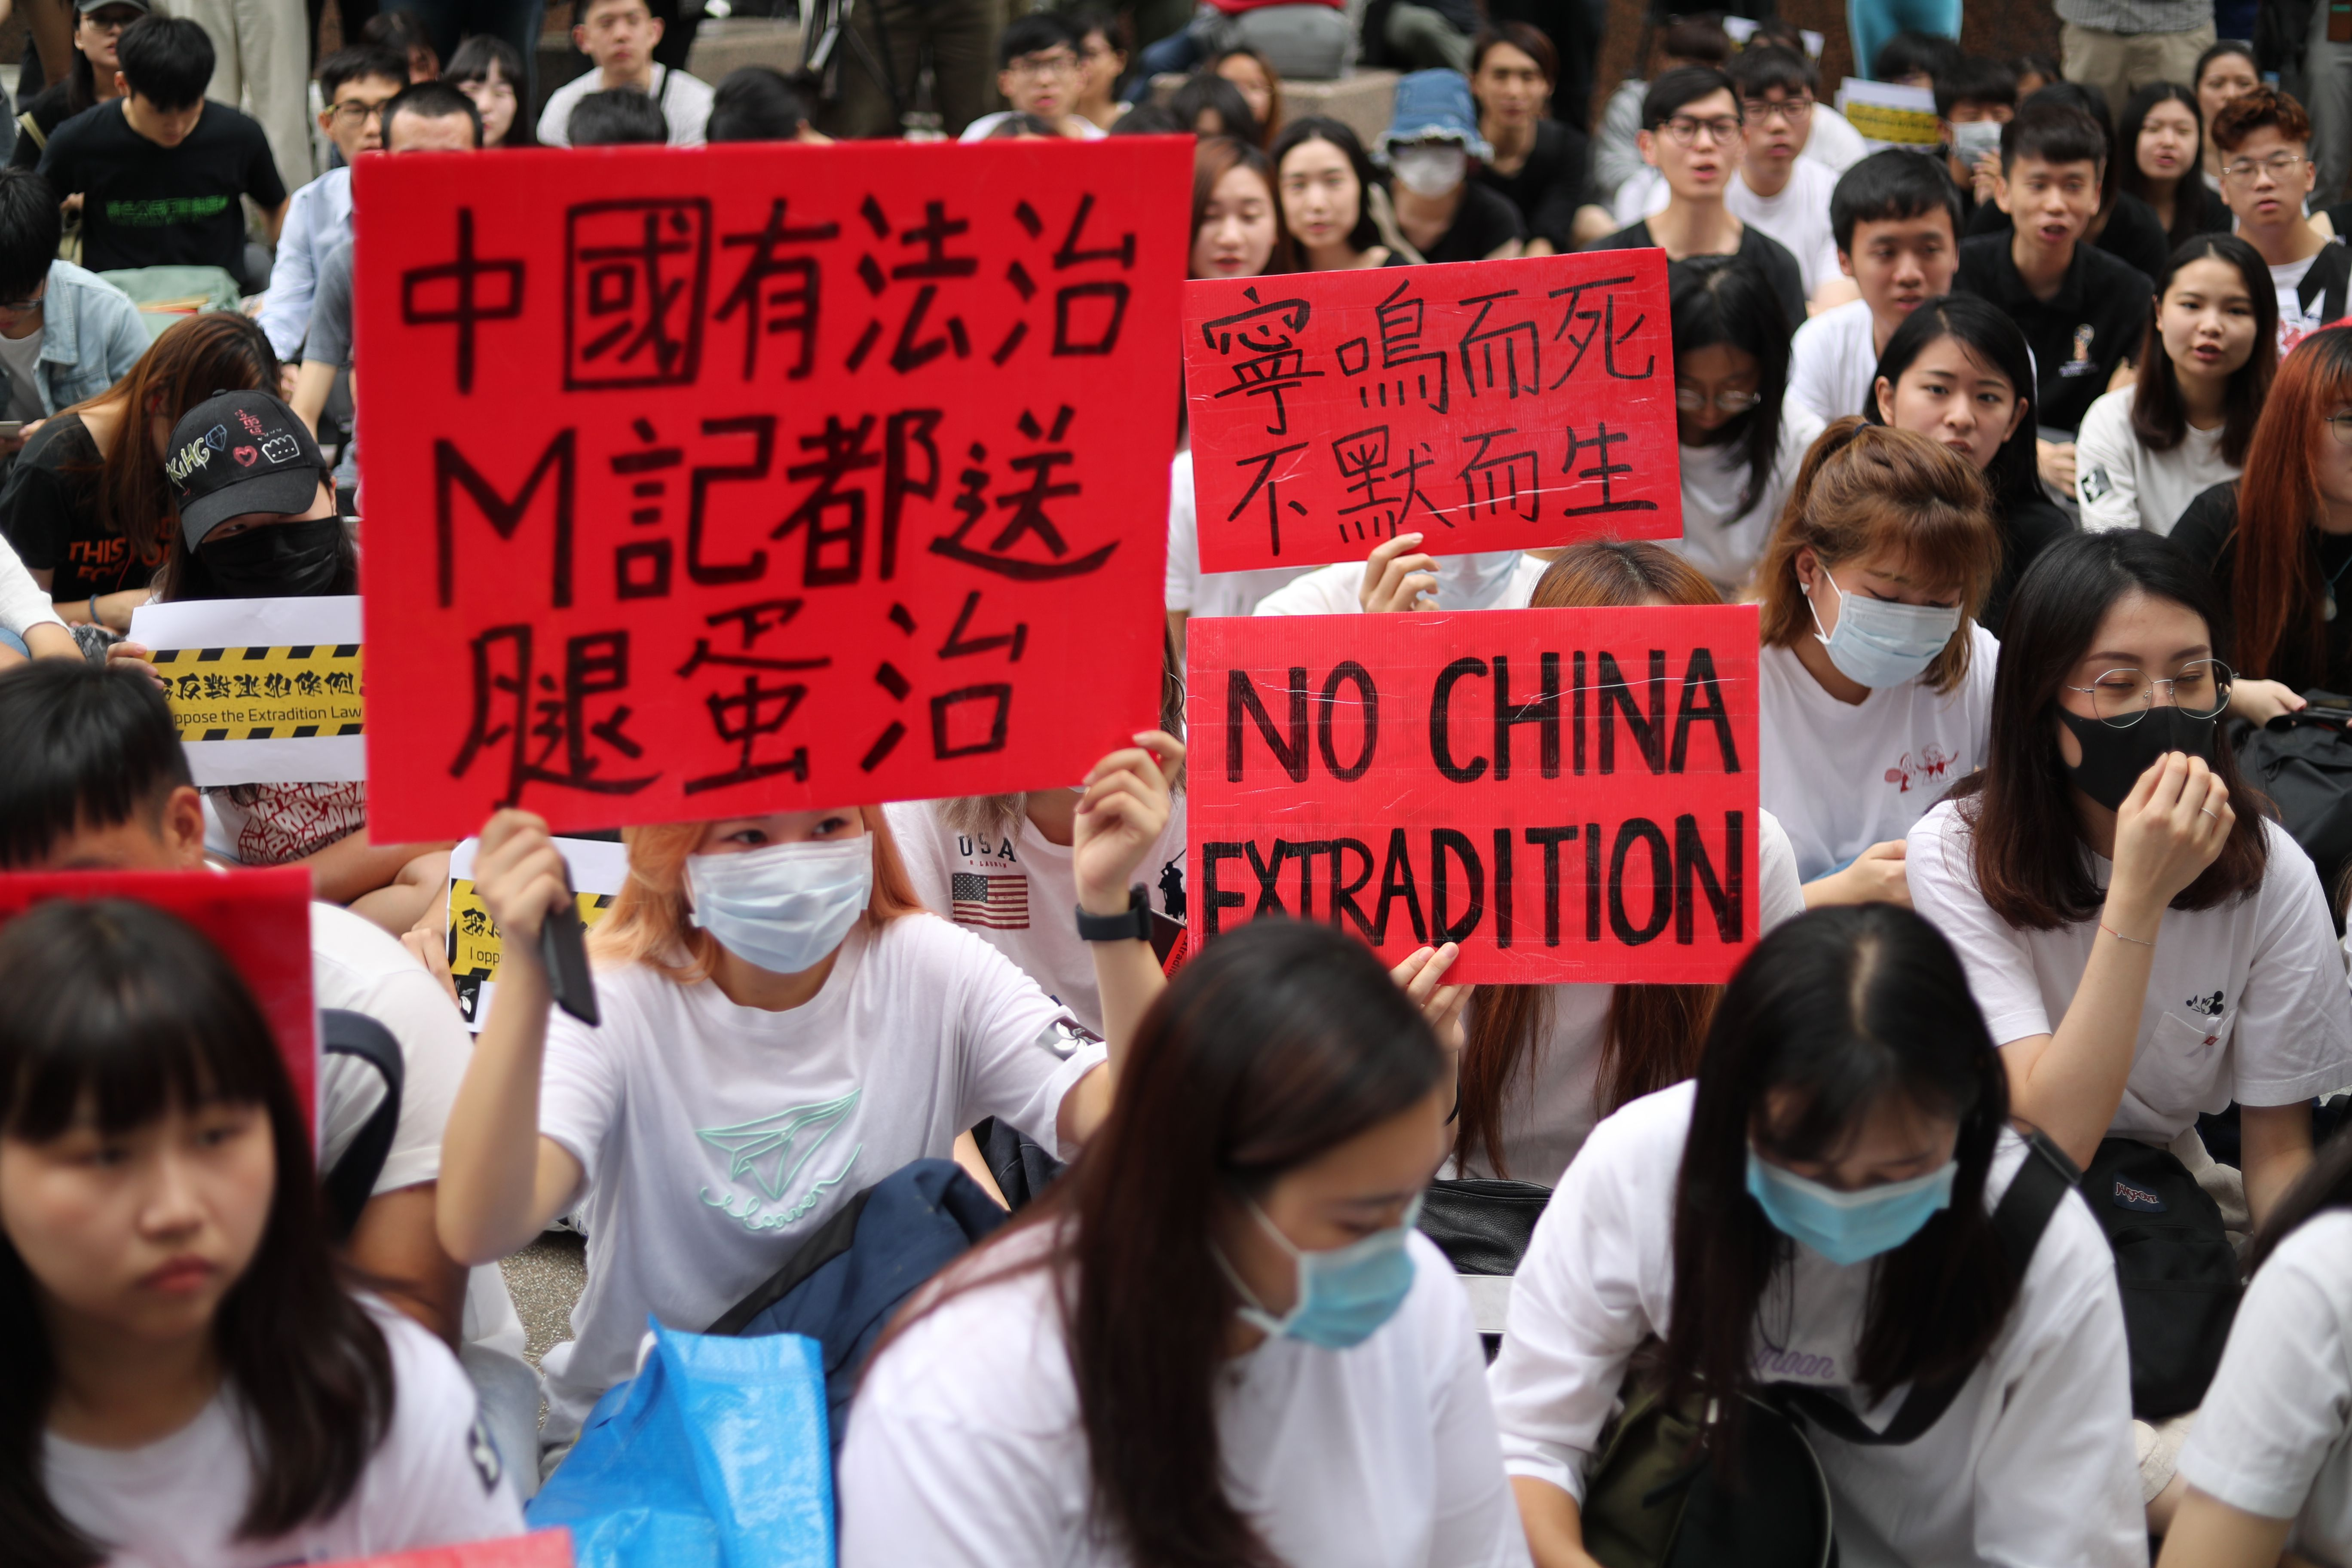 Demonstrators fear that the extraditions could be a tool for Beijing to target political dissenters in the semi-autonomous city, further eroding civil freedoms.